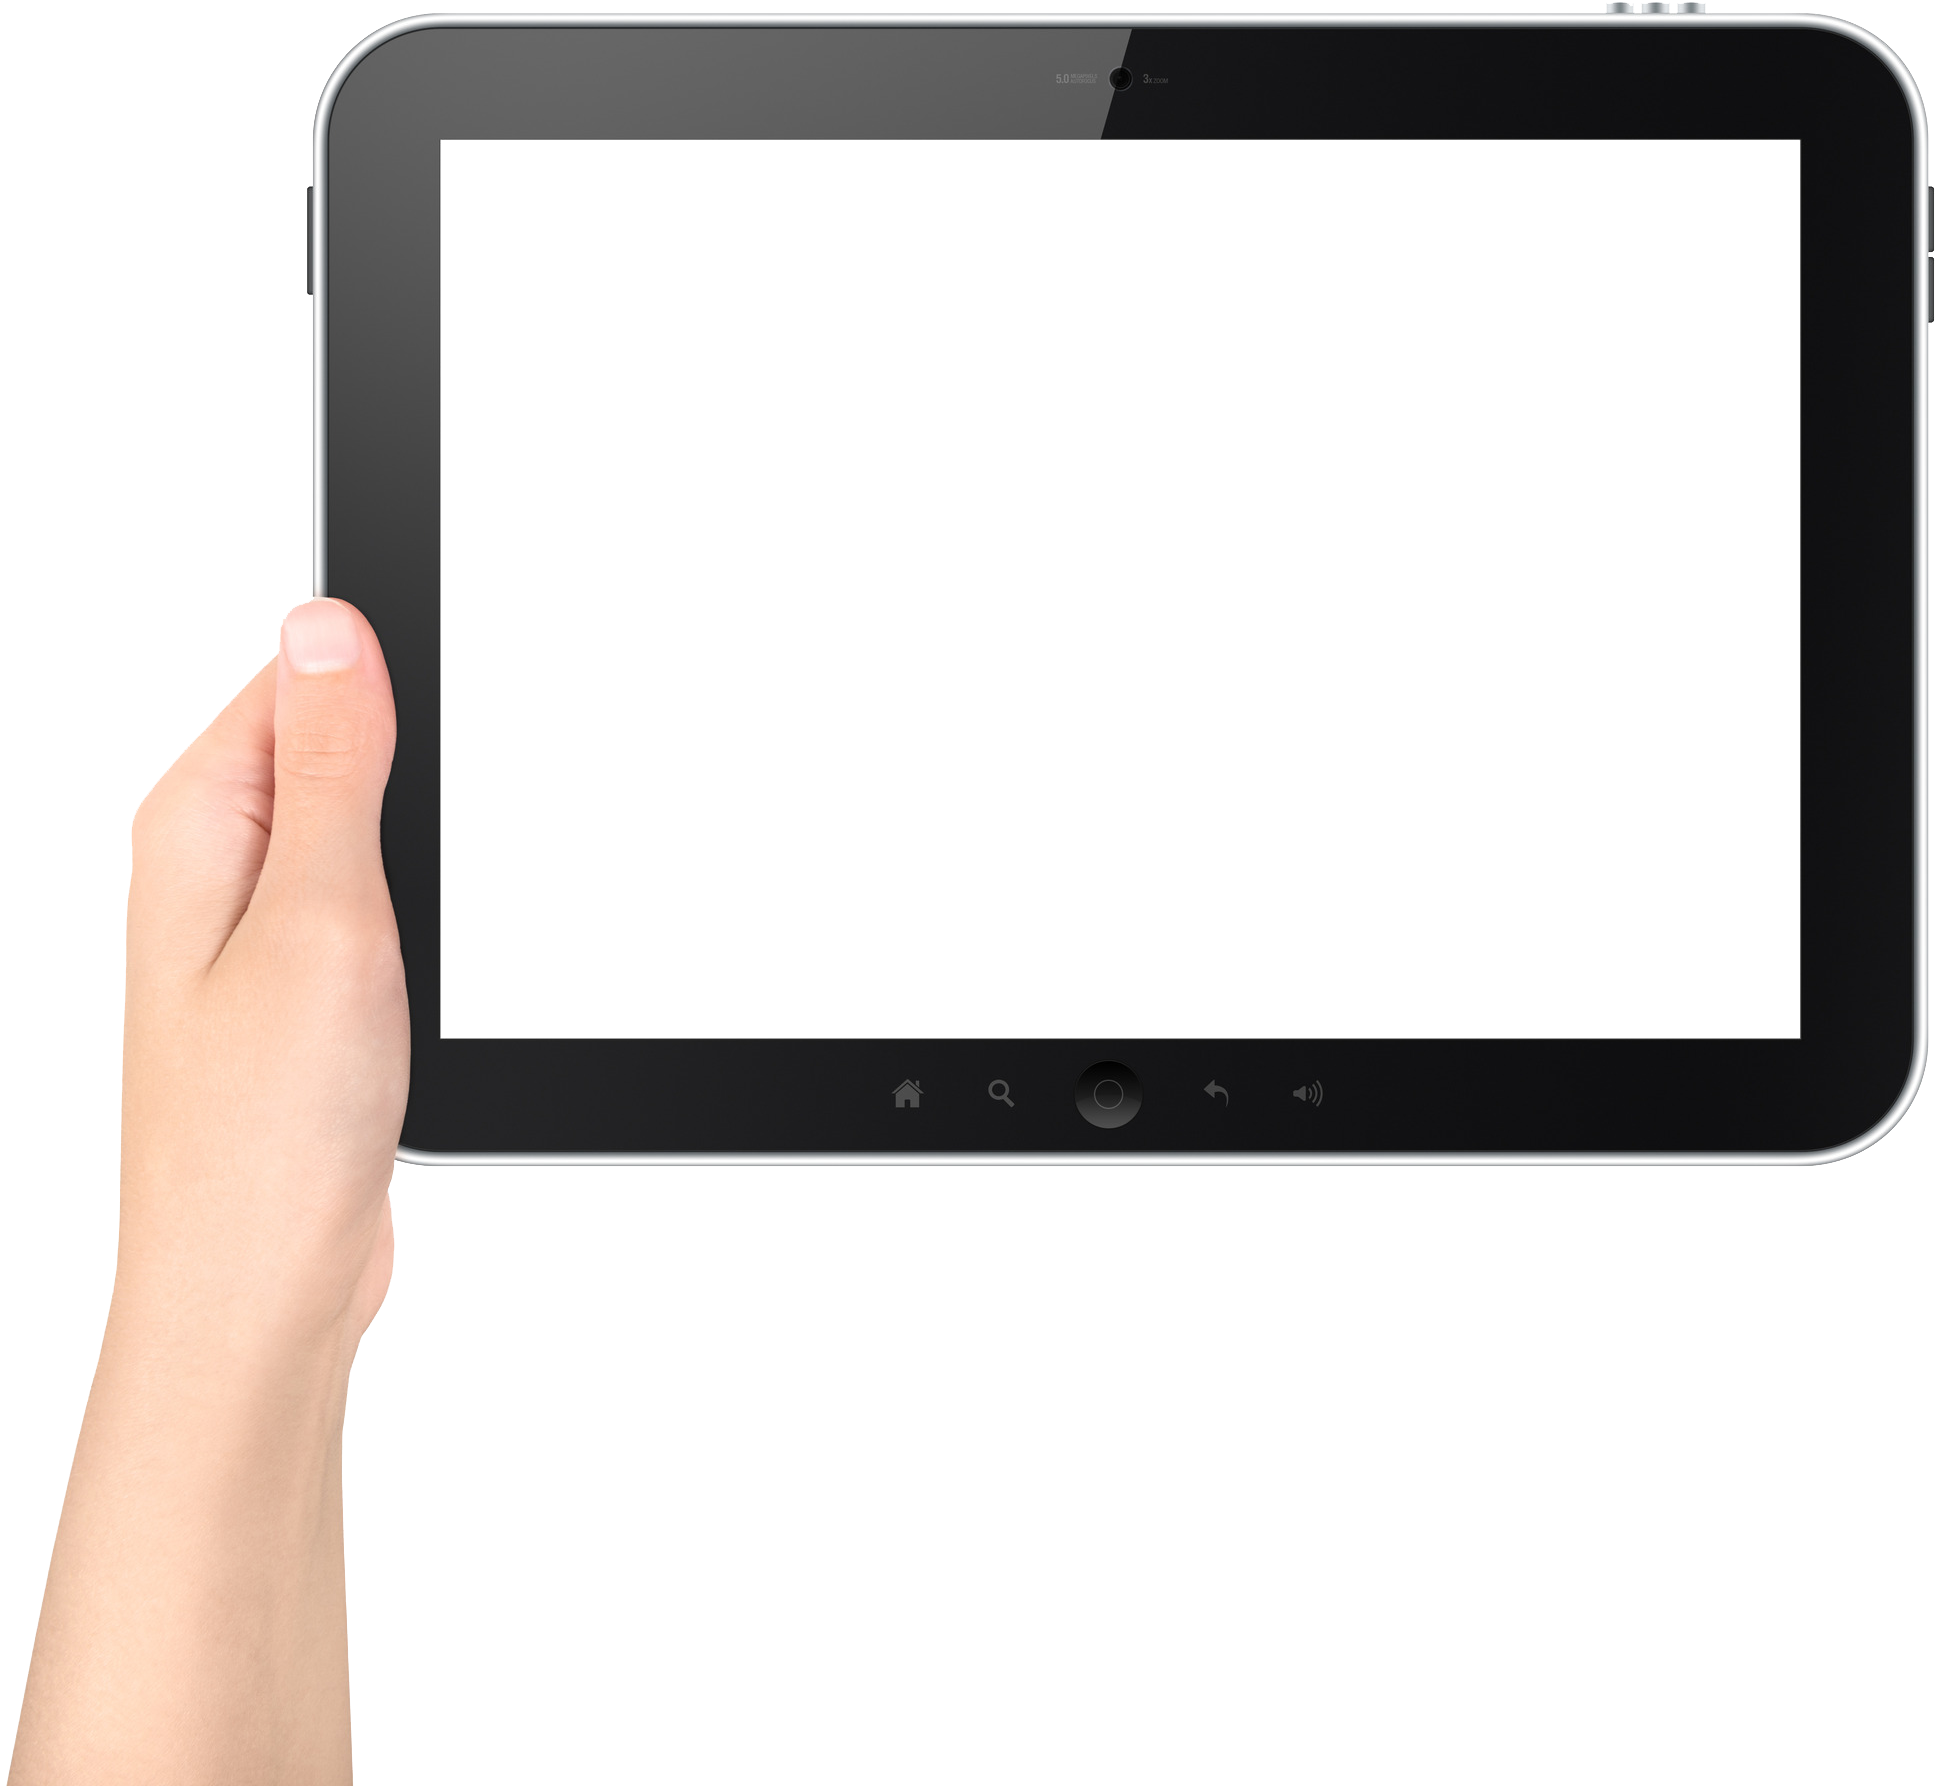 iPad PNG Images Transparent Free Download.